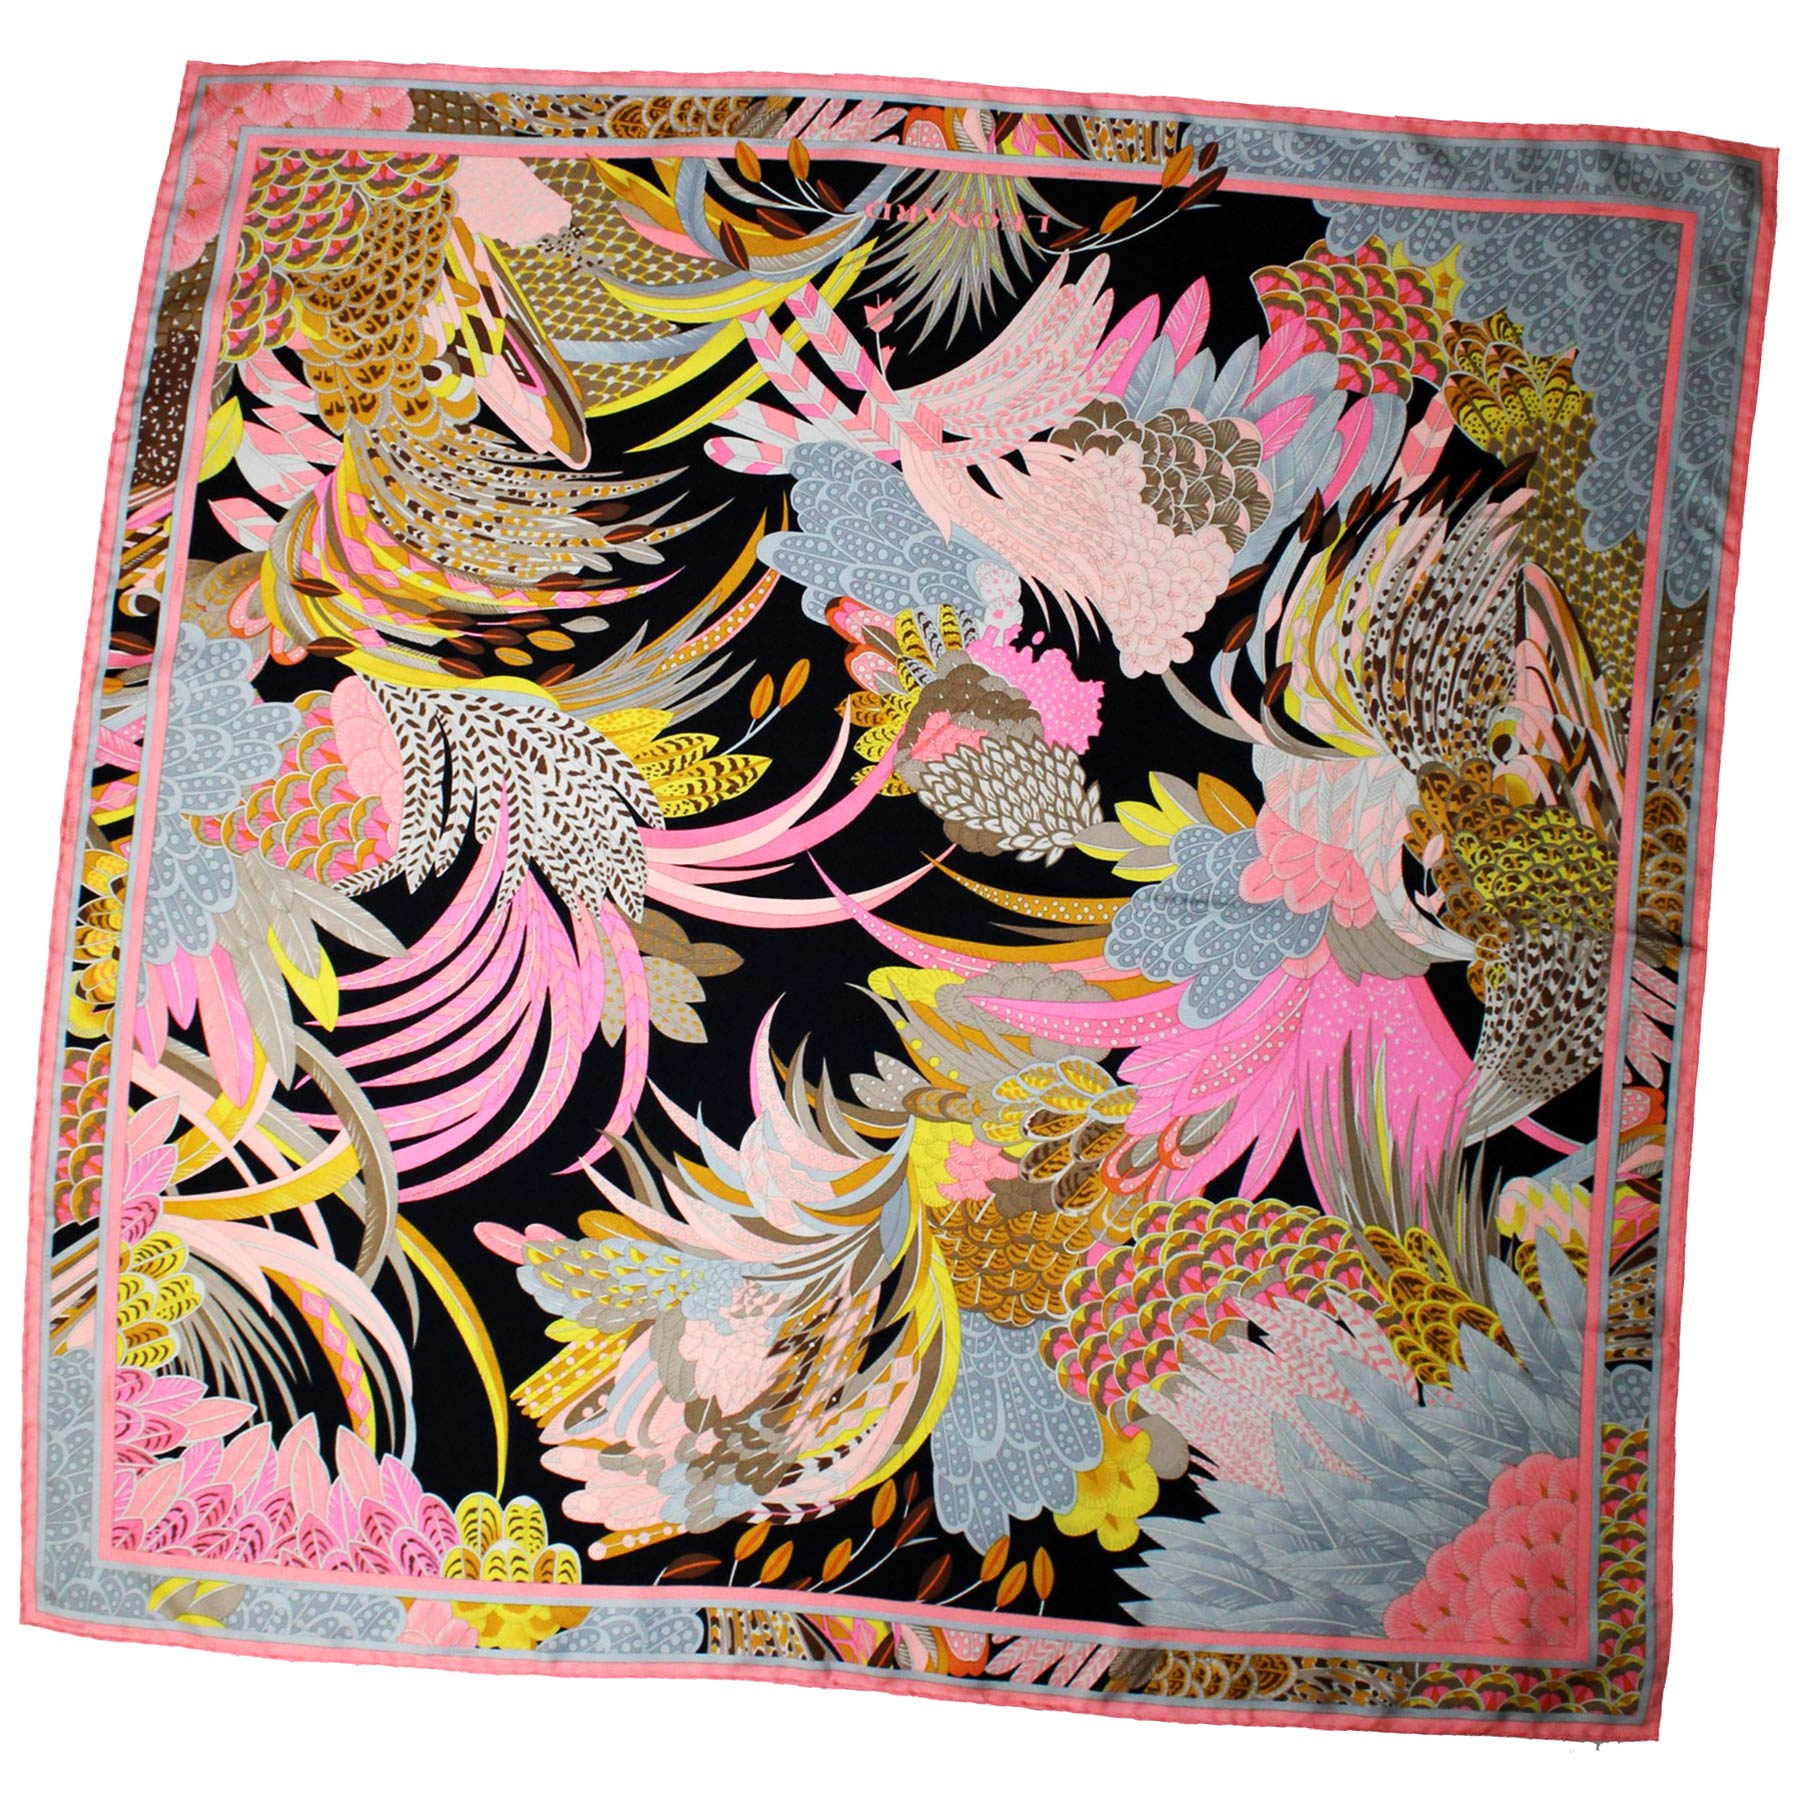 Leonard Paris Scarf Pink Brown Gray Floral - Large Square Twill Silk Scarf